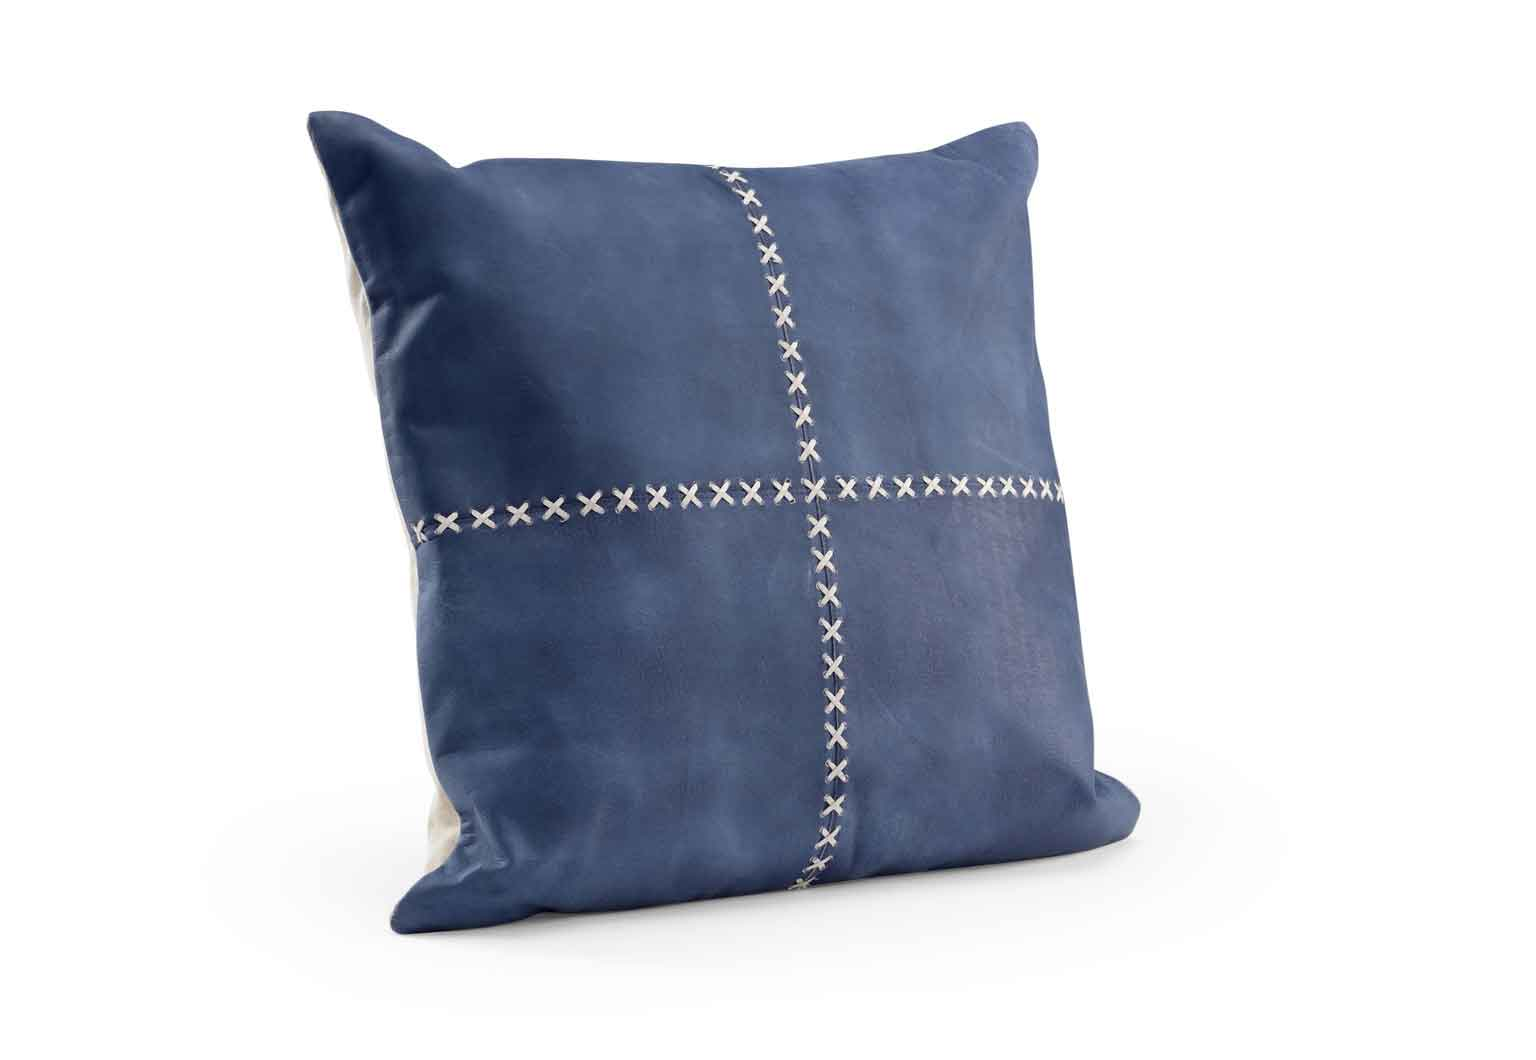 Laredo Pillow in Blue Suede Cream Leather Lacing Wildwood